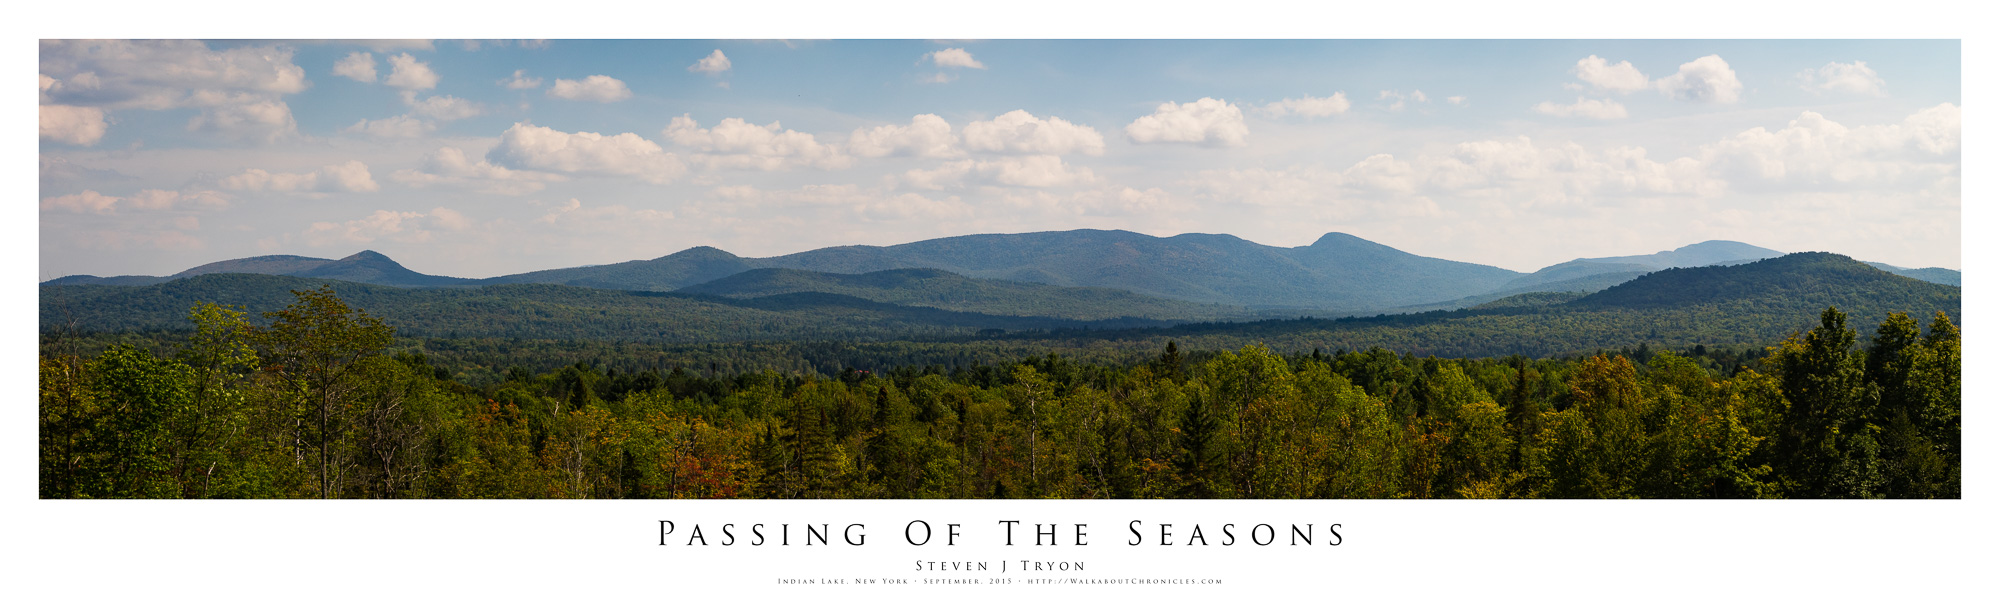 Passing Of The Seasons